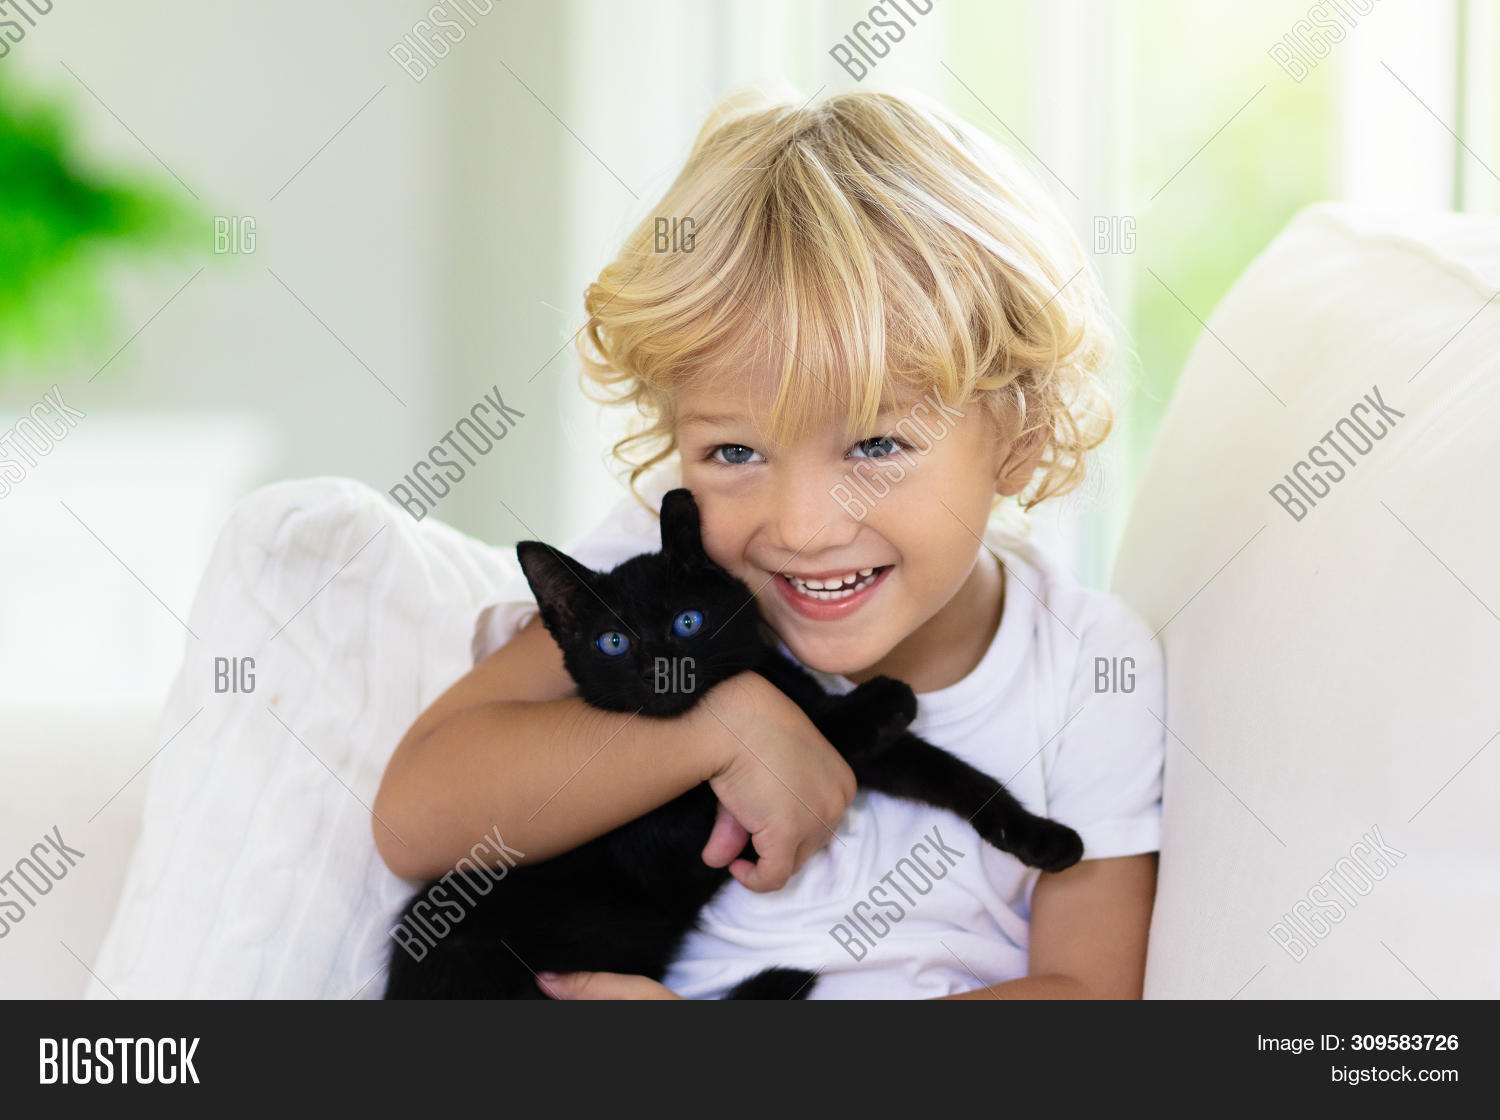 Fabulous Child Playing Baby Cat Image Photo Free Trial Bigstock Dailytribune Chair Design For Home Dailytribuneorg